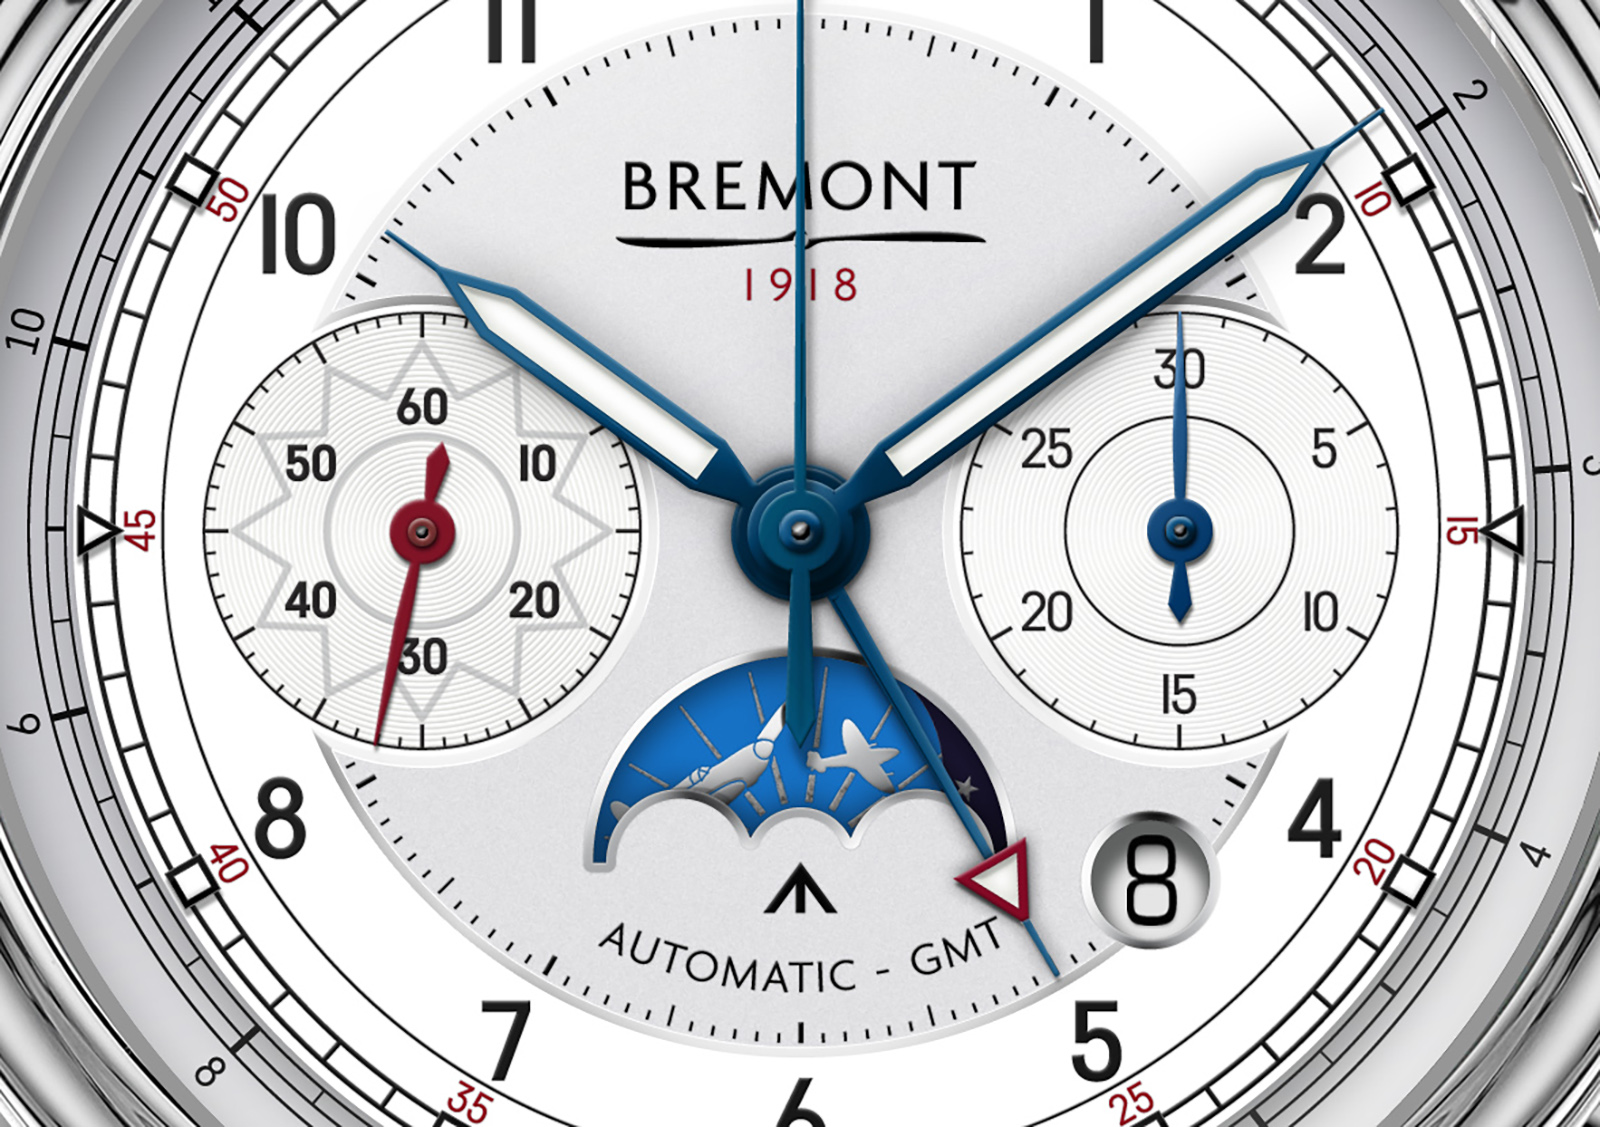 Bremont 1918 Limited Edition Chronograph 2